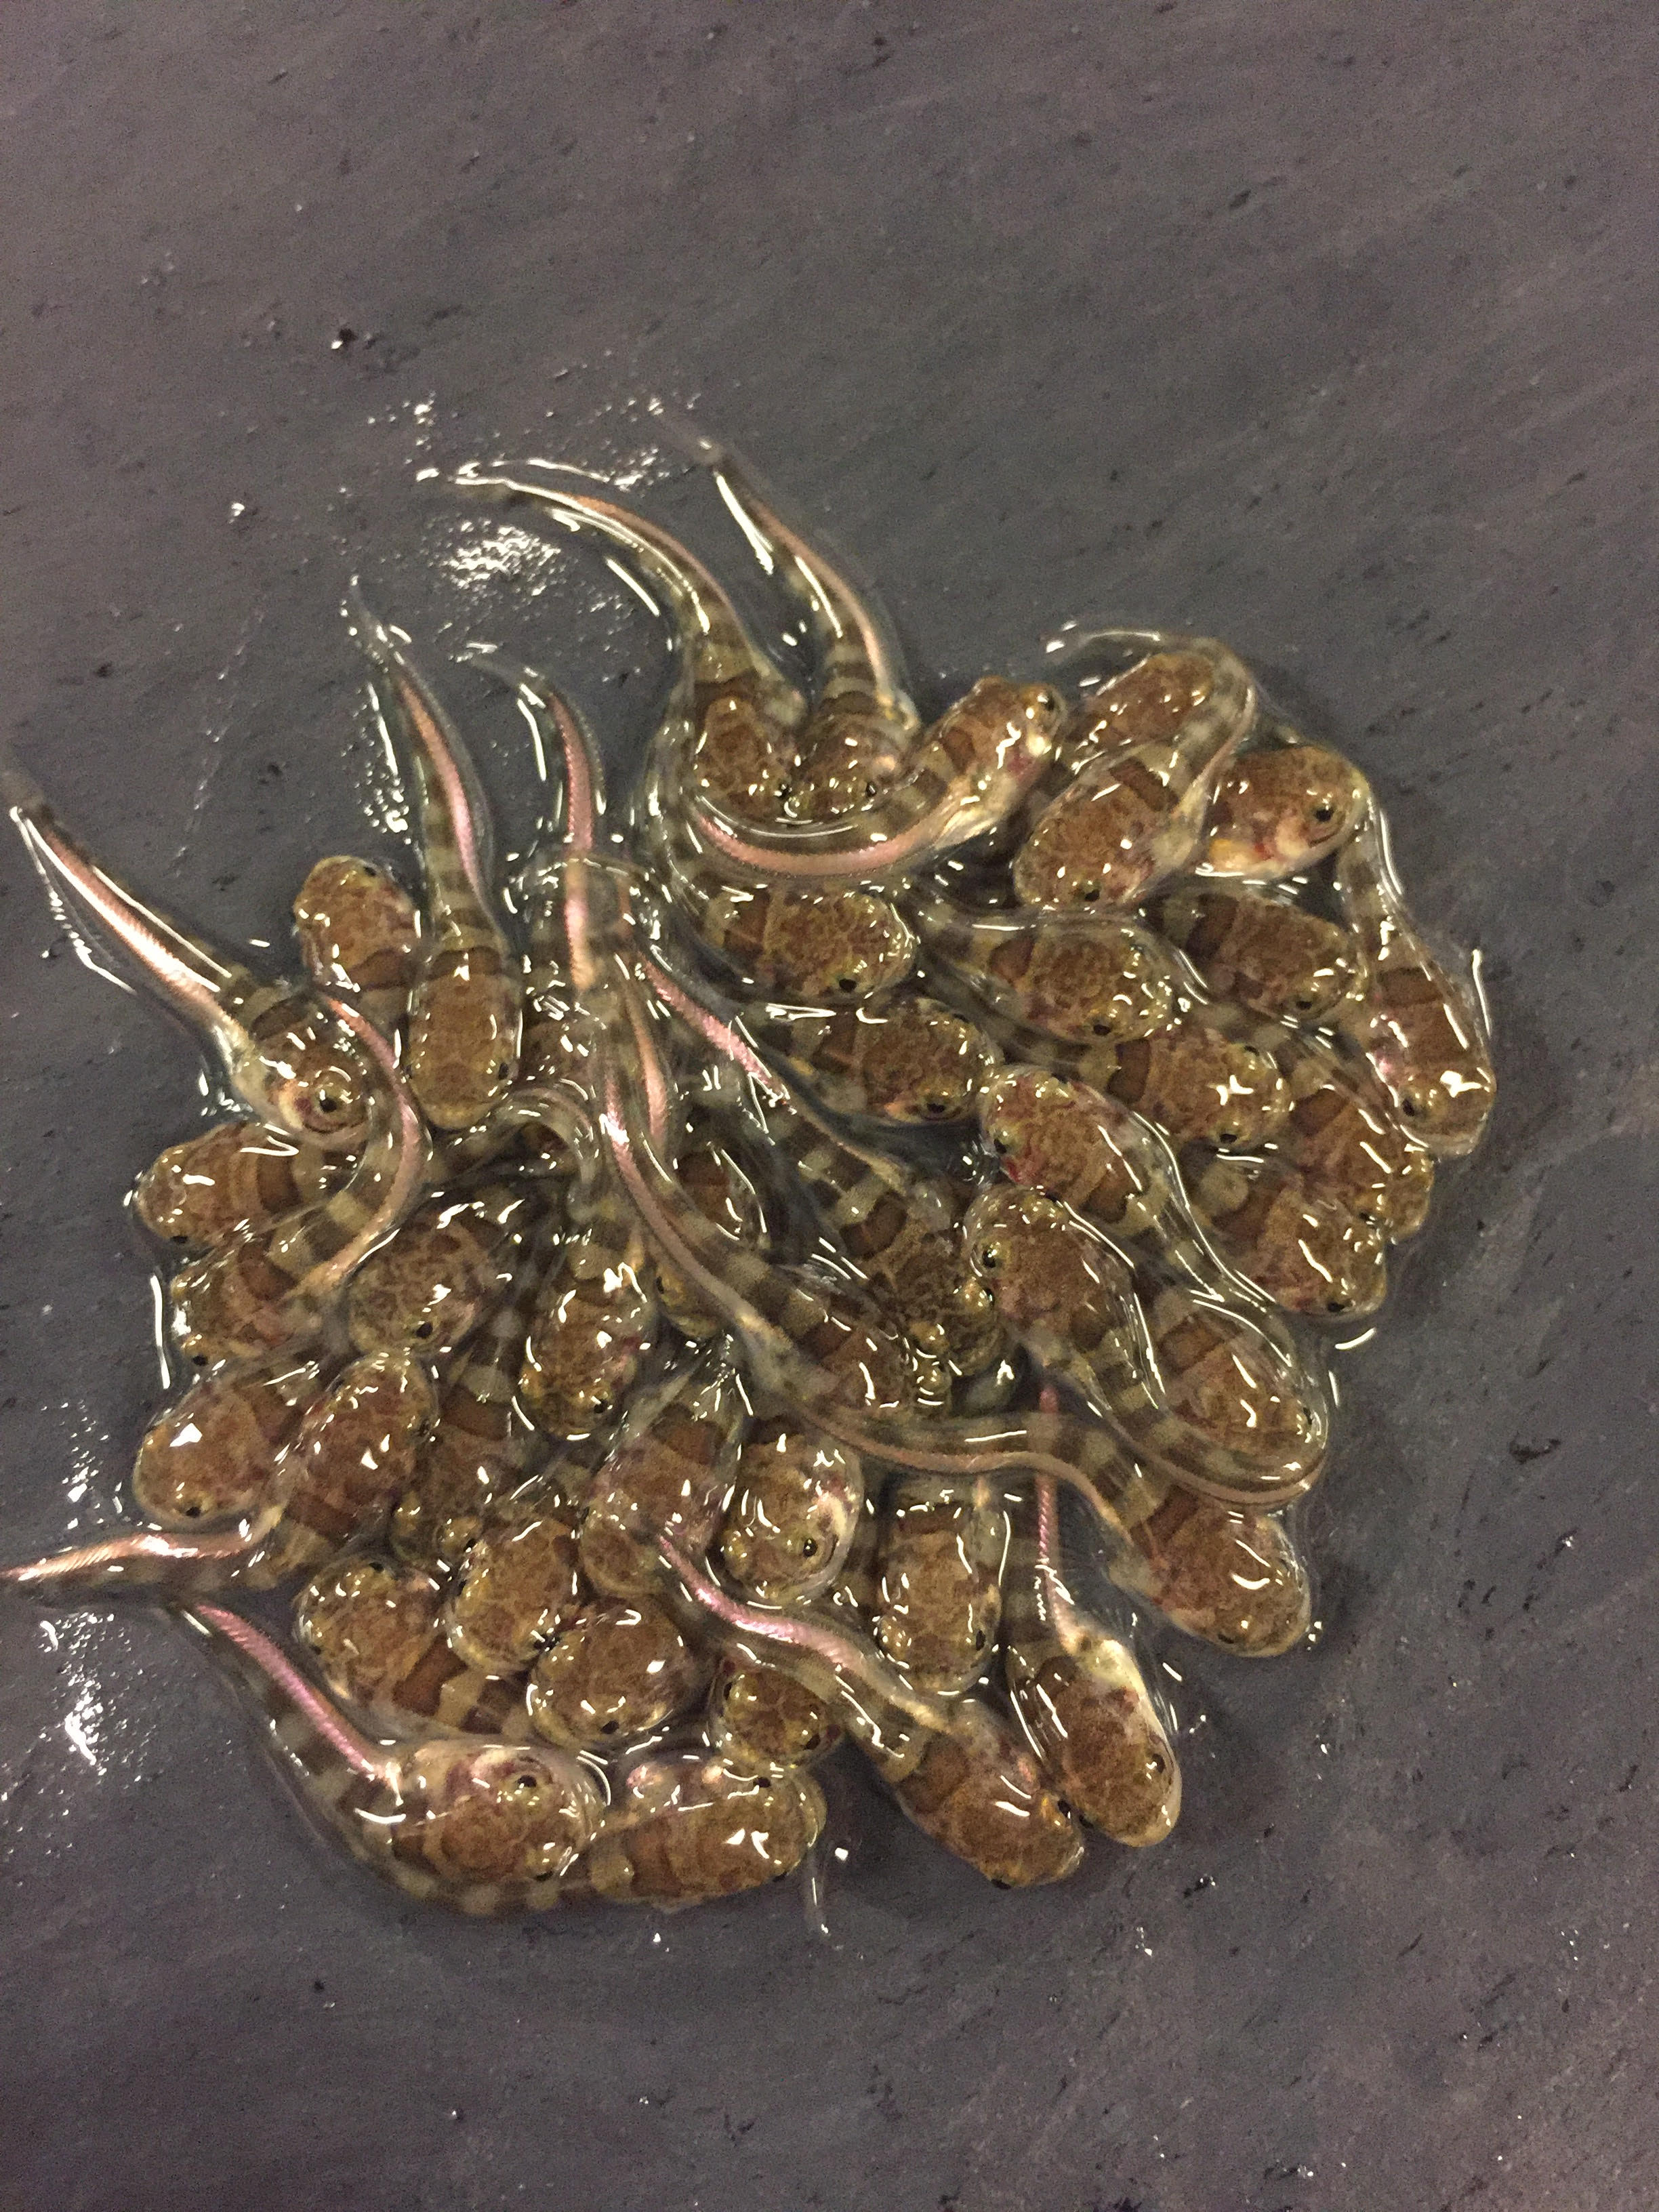 A brood of juvenile plainfin midshipman fish, approximately 2 months old, still attached to the nest surface via their yolk sacs (almost fully absorbed by now).